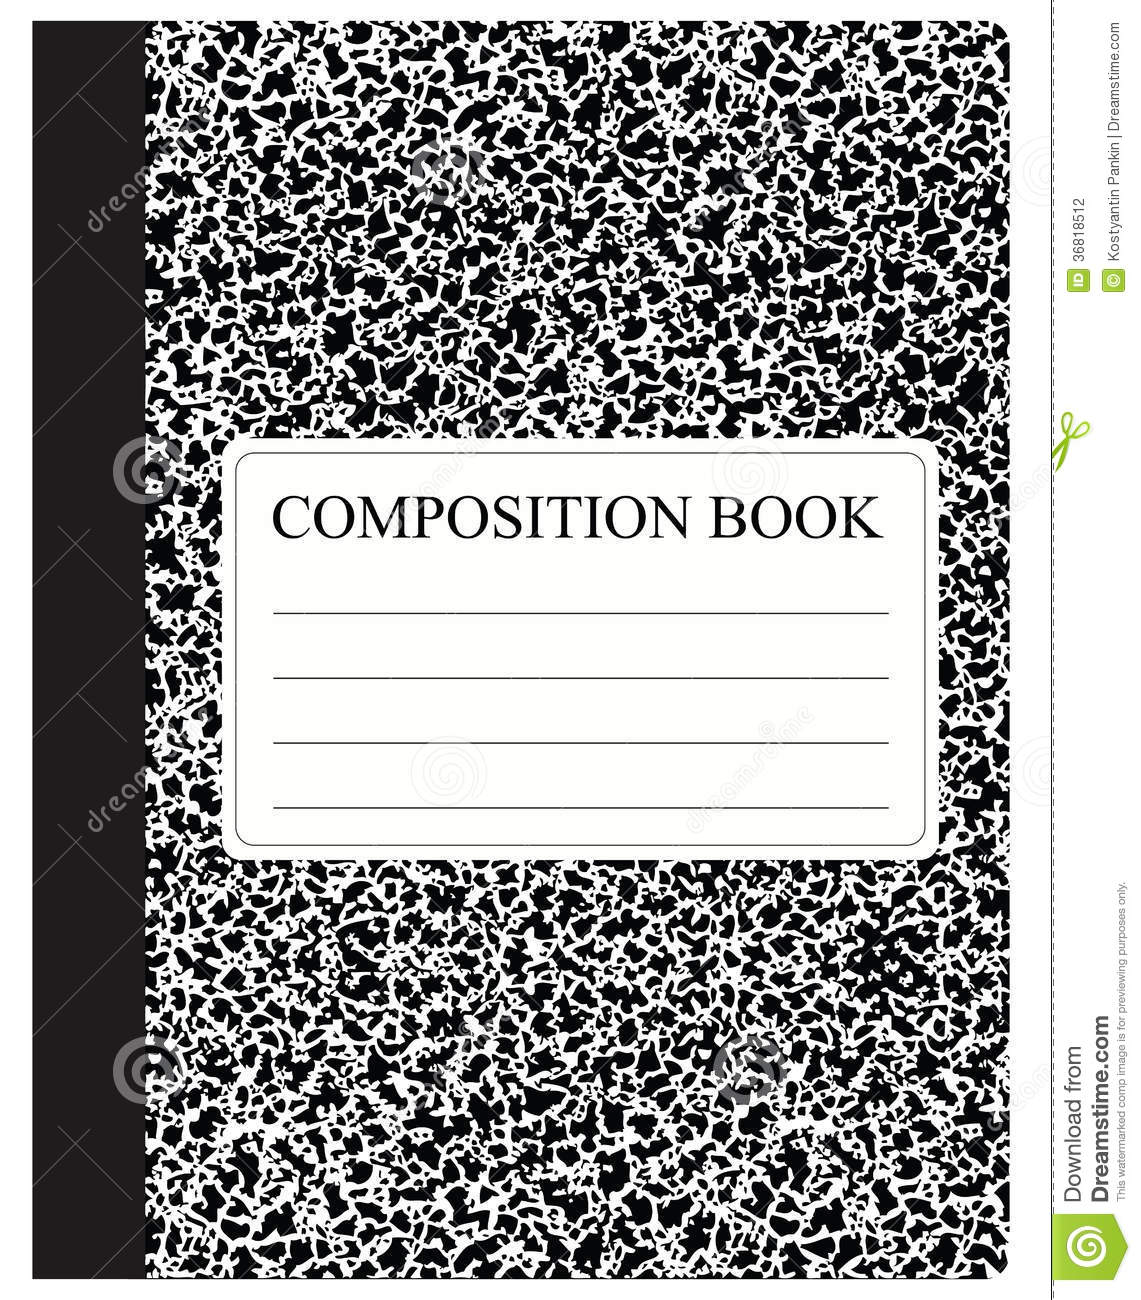 General Studies custom composition book